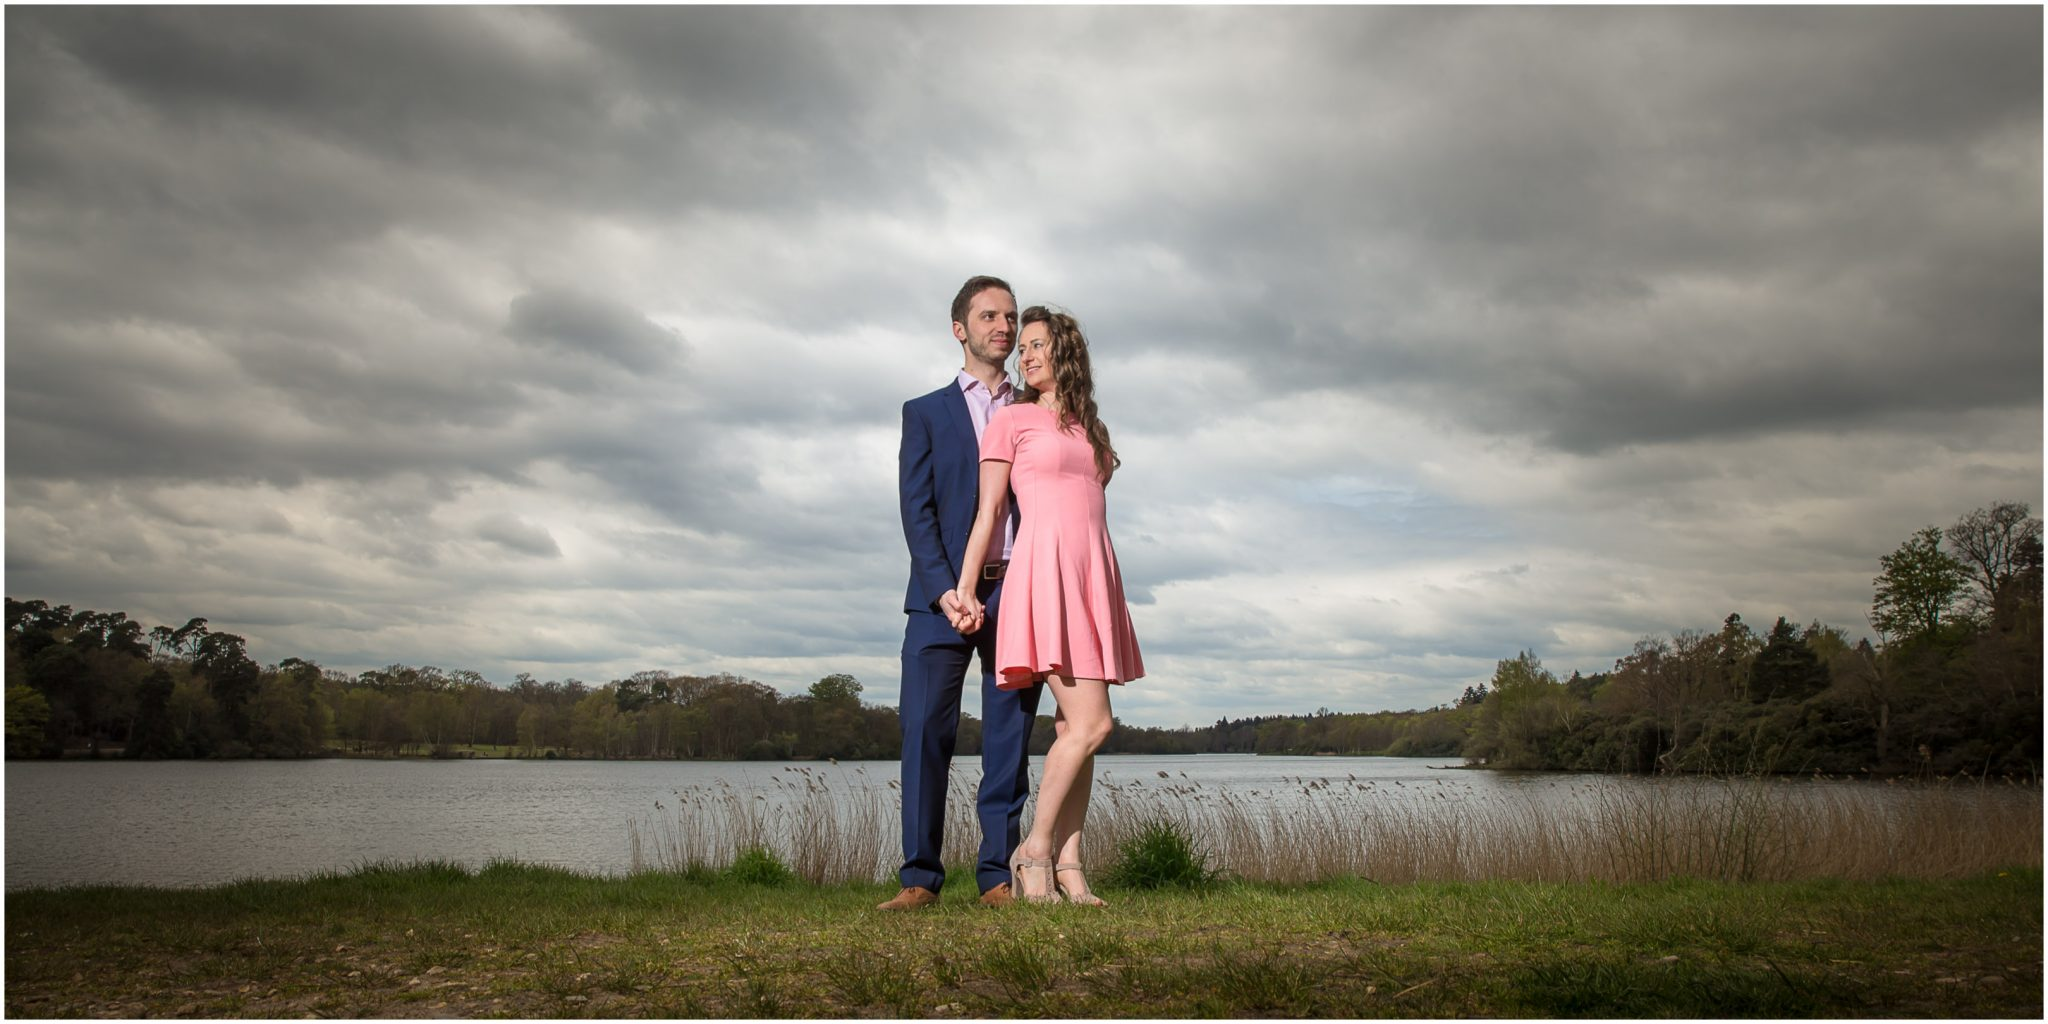 Virginia Water Lake pre-wedding photography